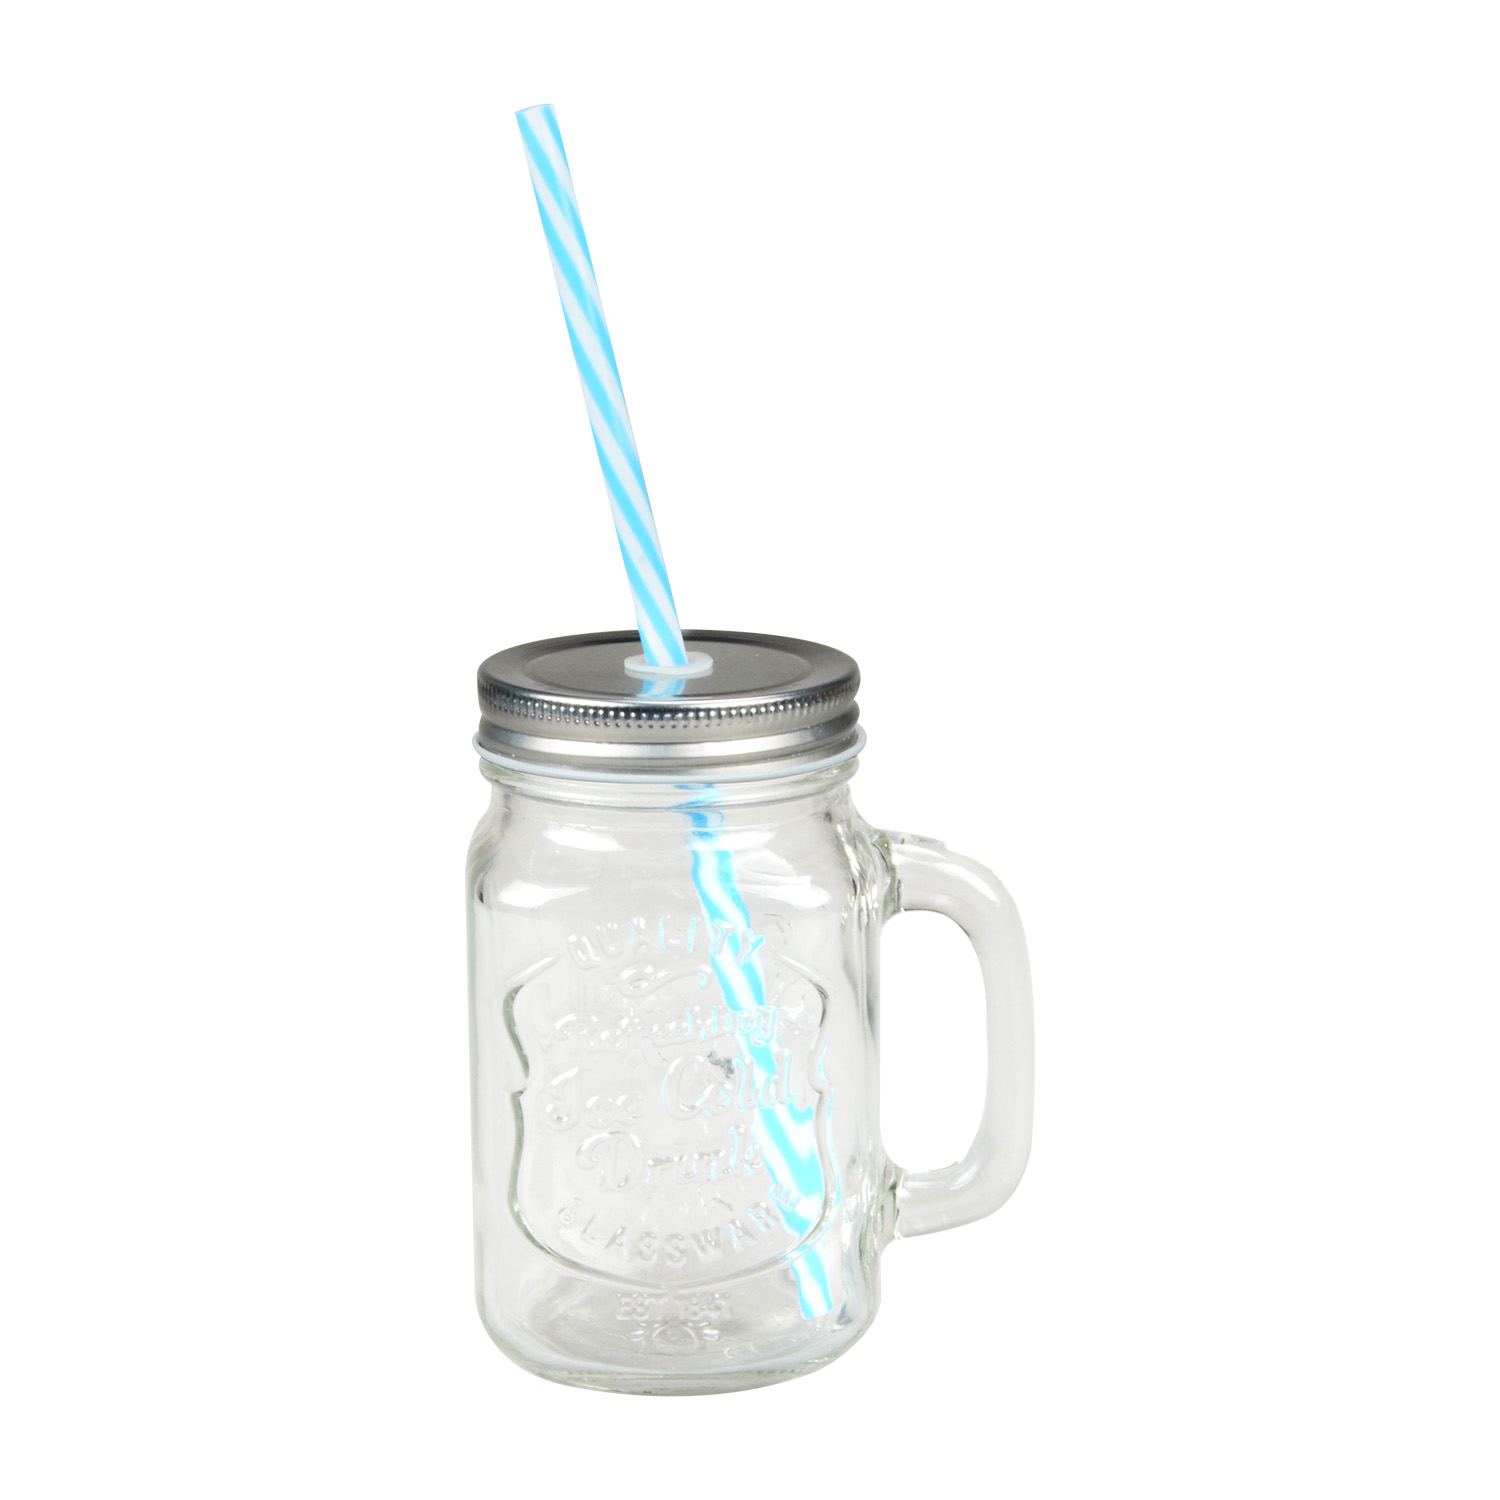 Wholesale 450ml Glass Jar Mason Jar with Metal Lid and Straw